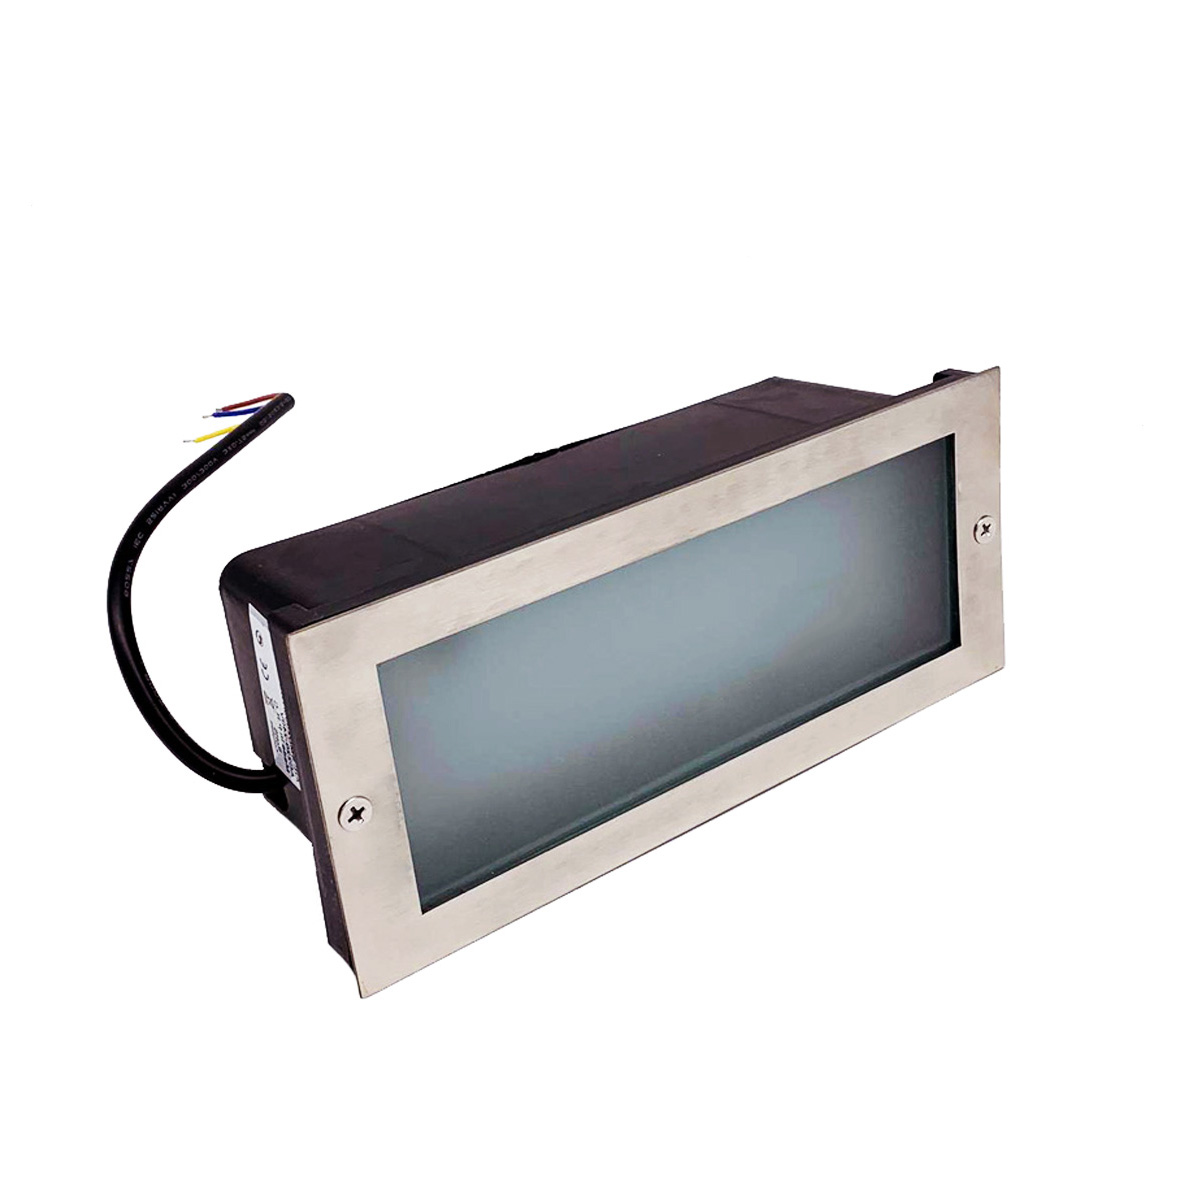 Spotlight camino de la luz LED de 10w de pared Rectangular empotrada smd 2835 FC3-10W